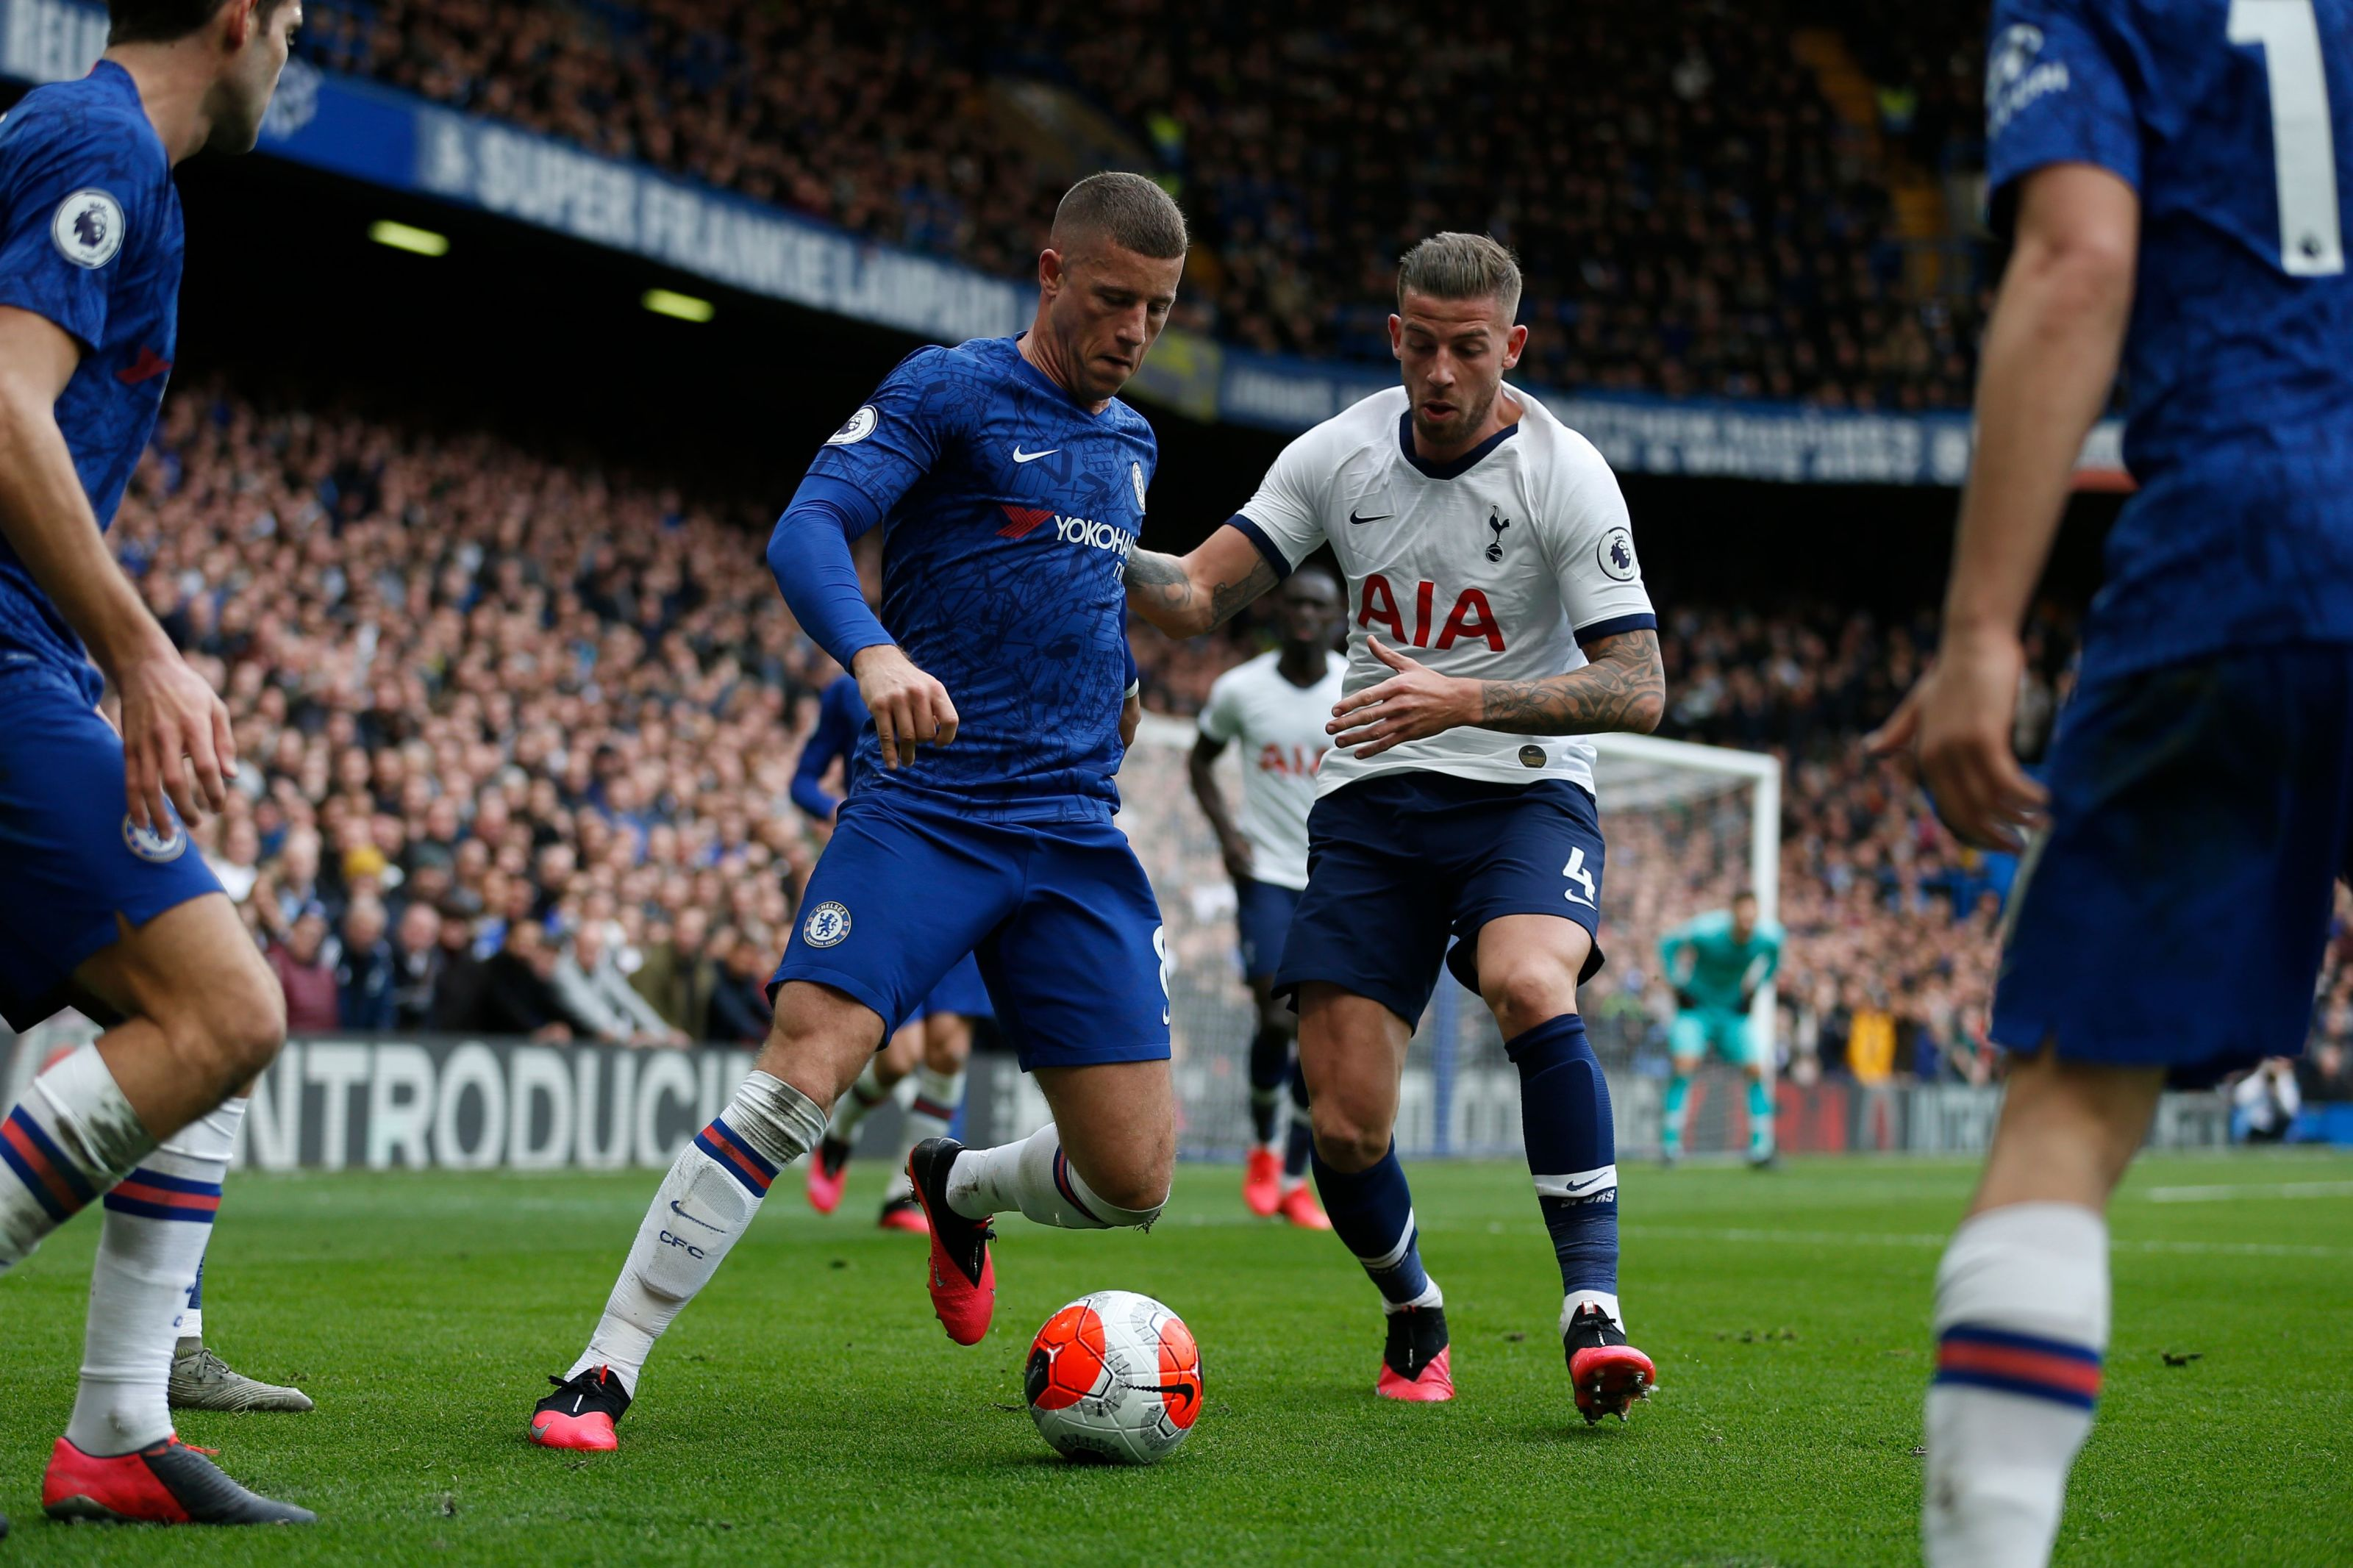 Nobody impresses in loss to Chelsea: Tottenham player ratings